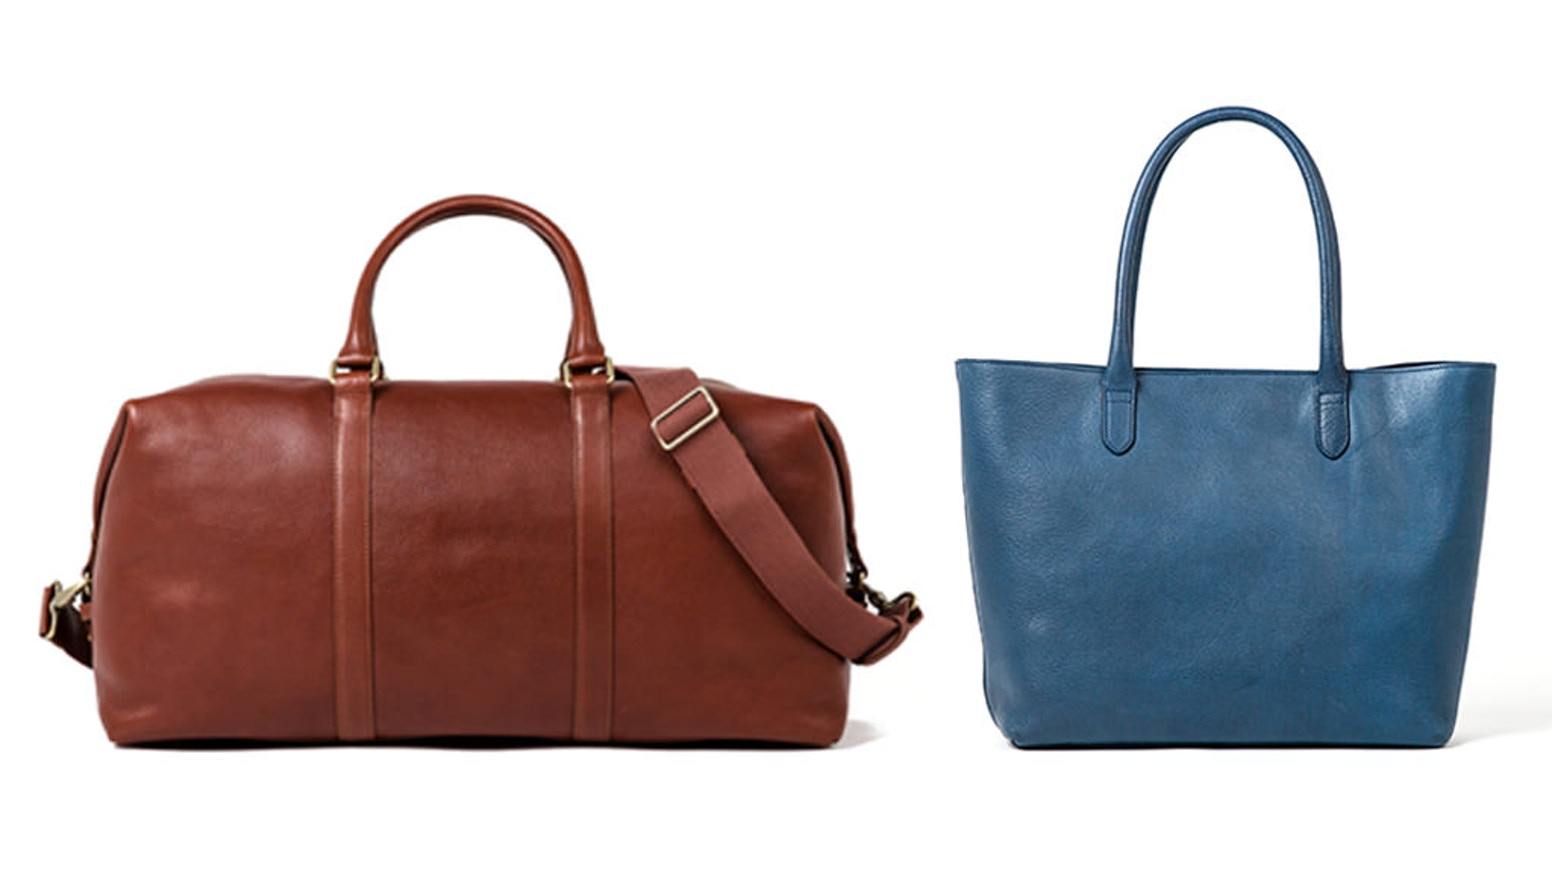 ae0ca28981 Minimalist Leather Bags without the Luxury Markup by Linjer Leather ...